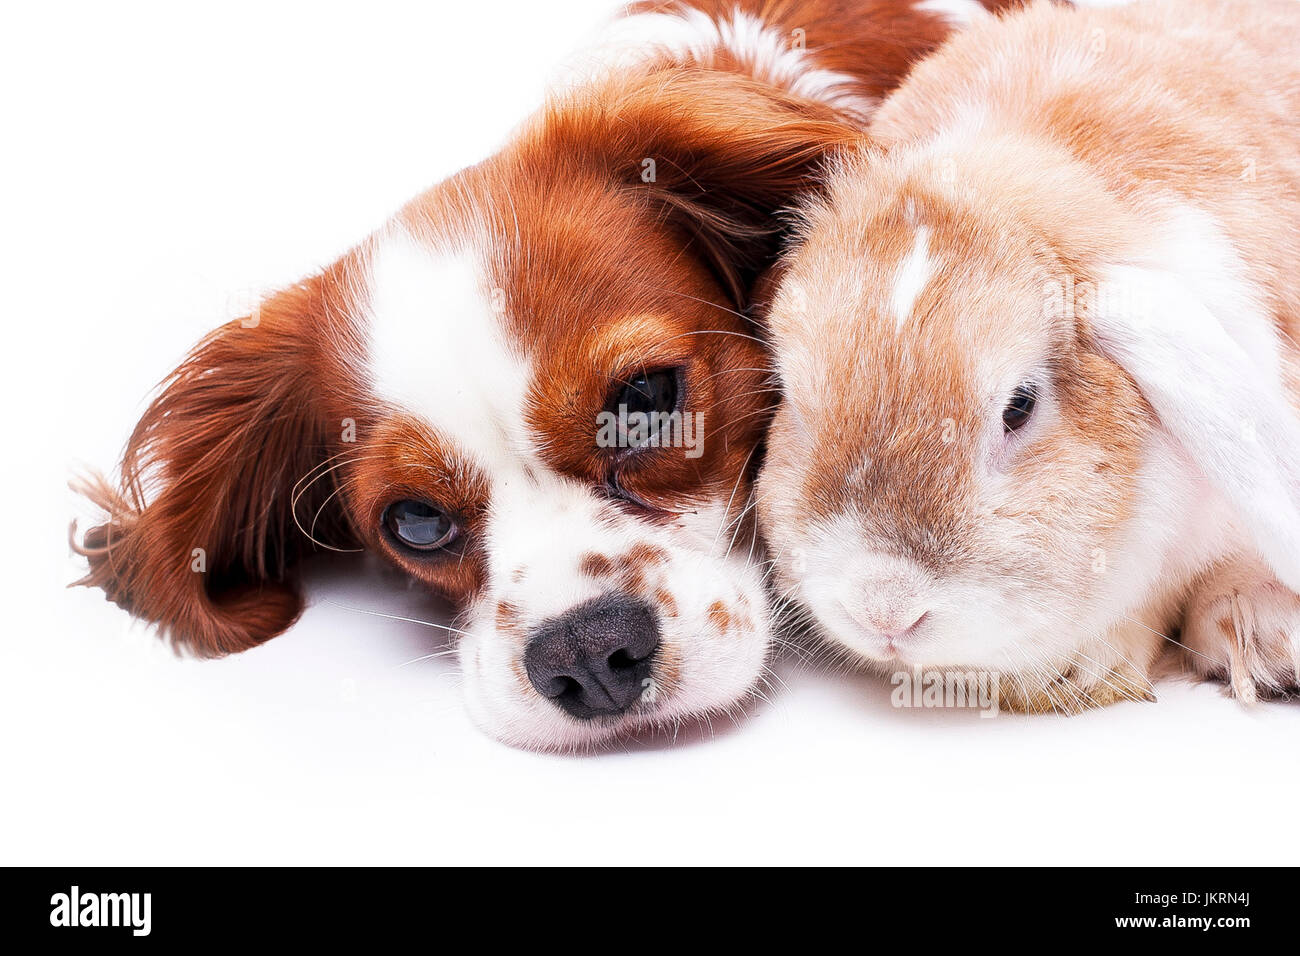 Animal friends. Pet enemies or real friendship can be true? Dog and lop bunny rabbit together. Cavalier king charles - Stock Image